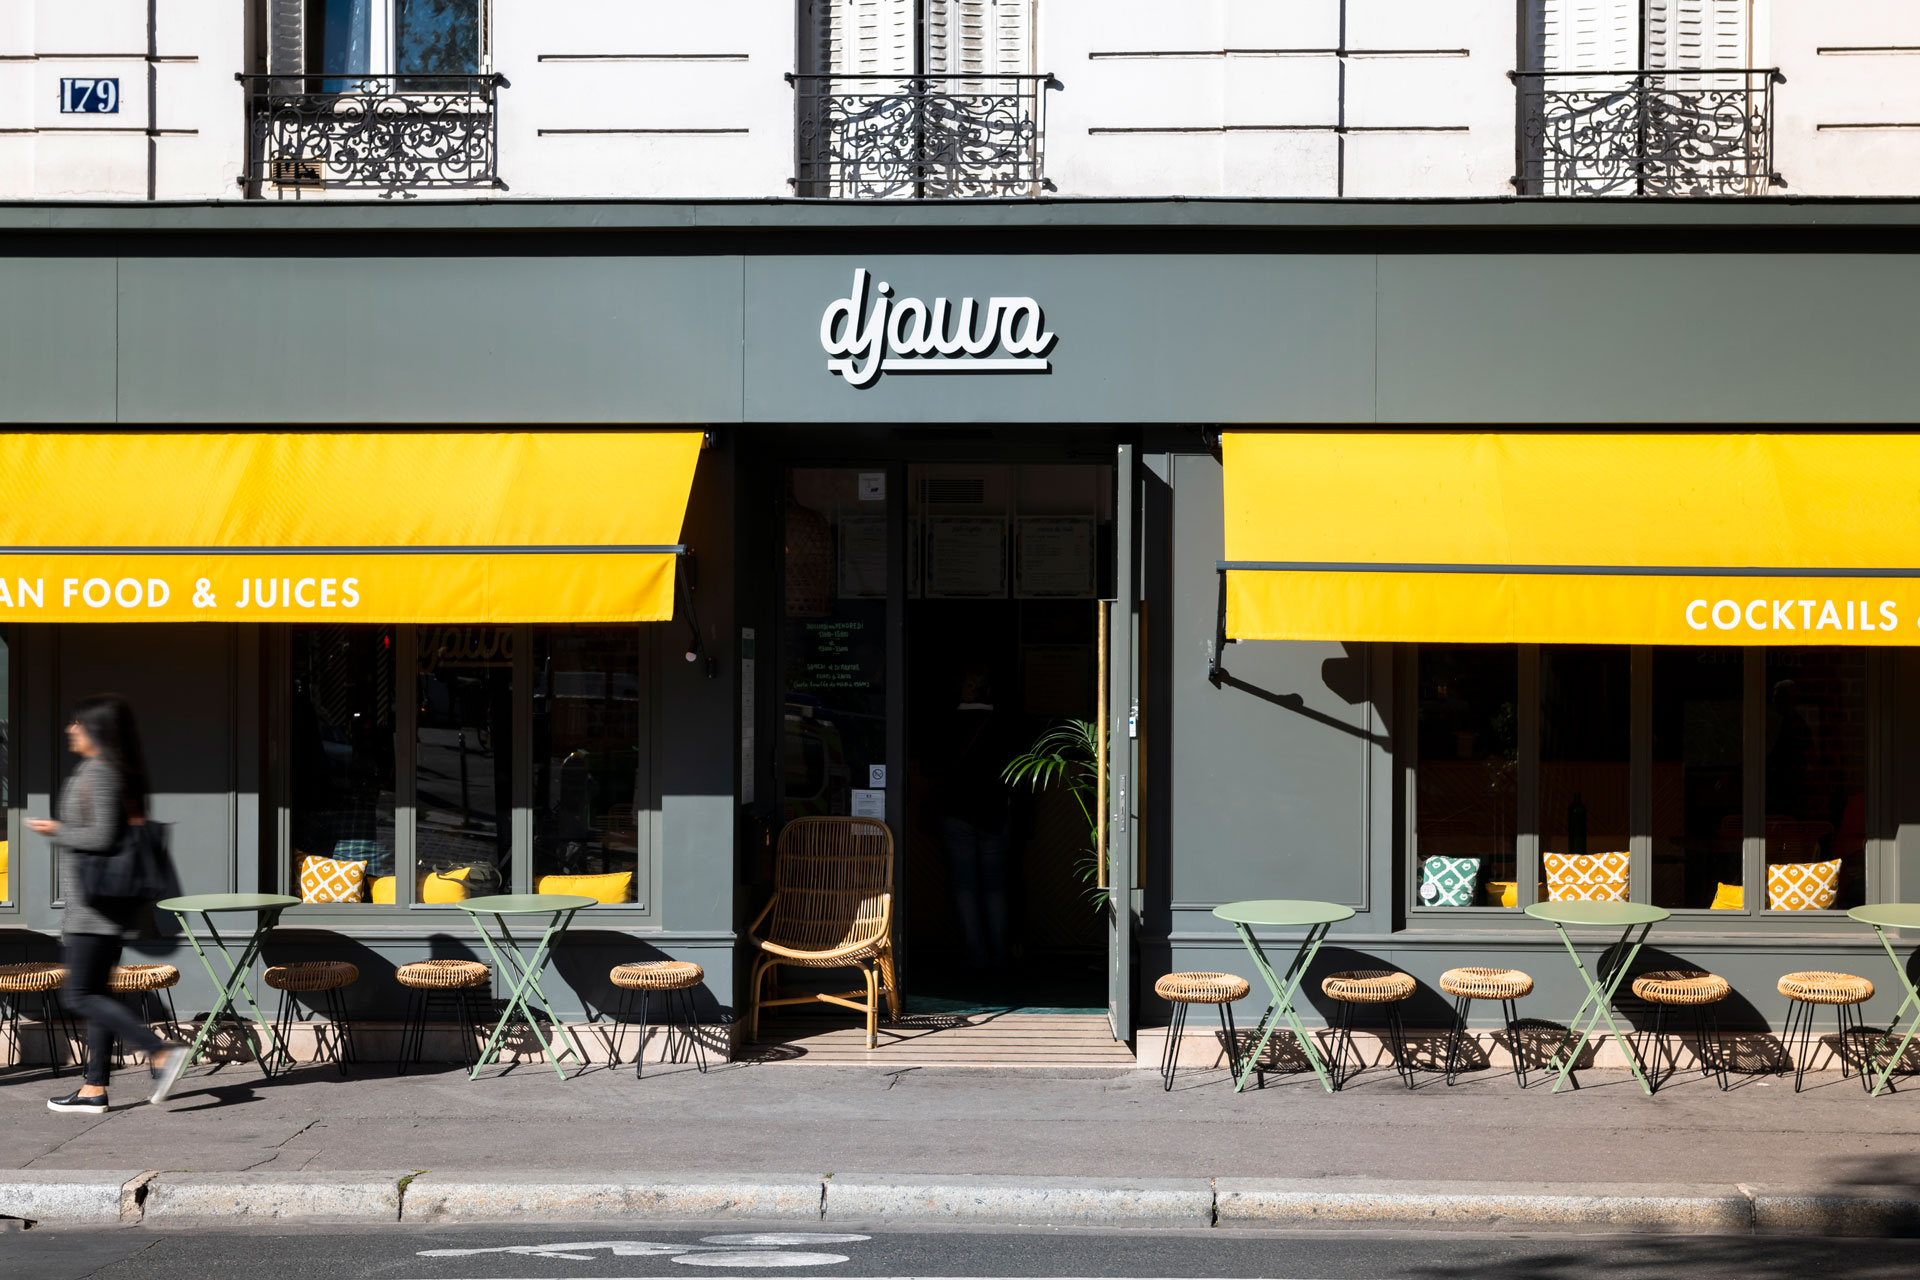 Djawa - restaurant - interior architecture - Paris - terrace - sign - valance - blind